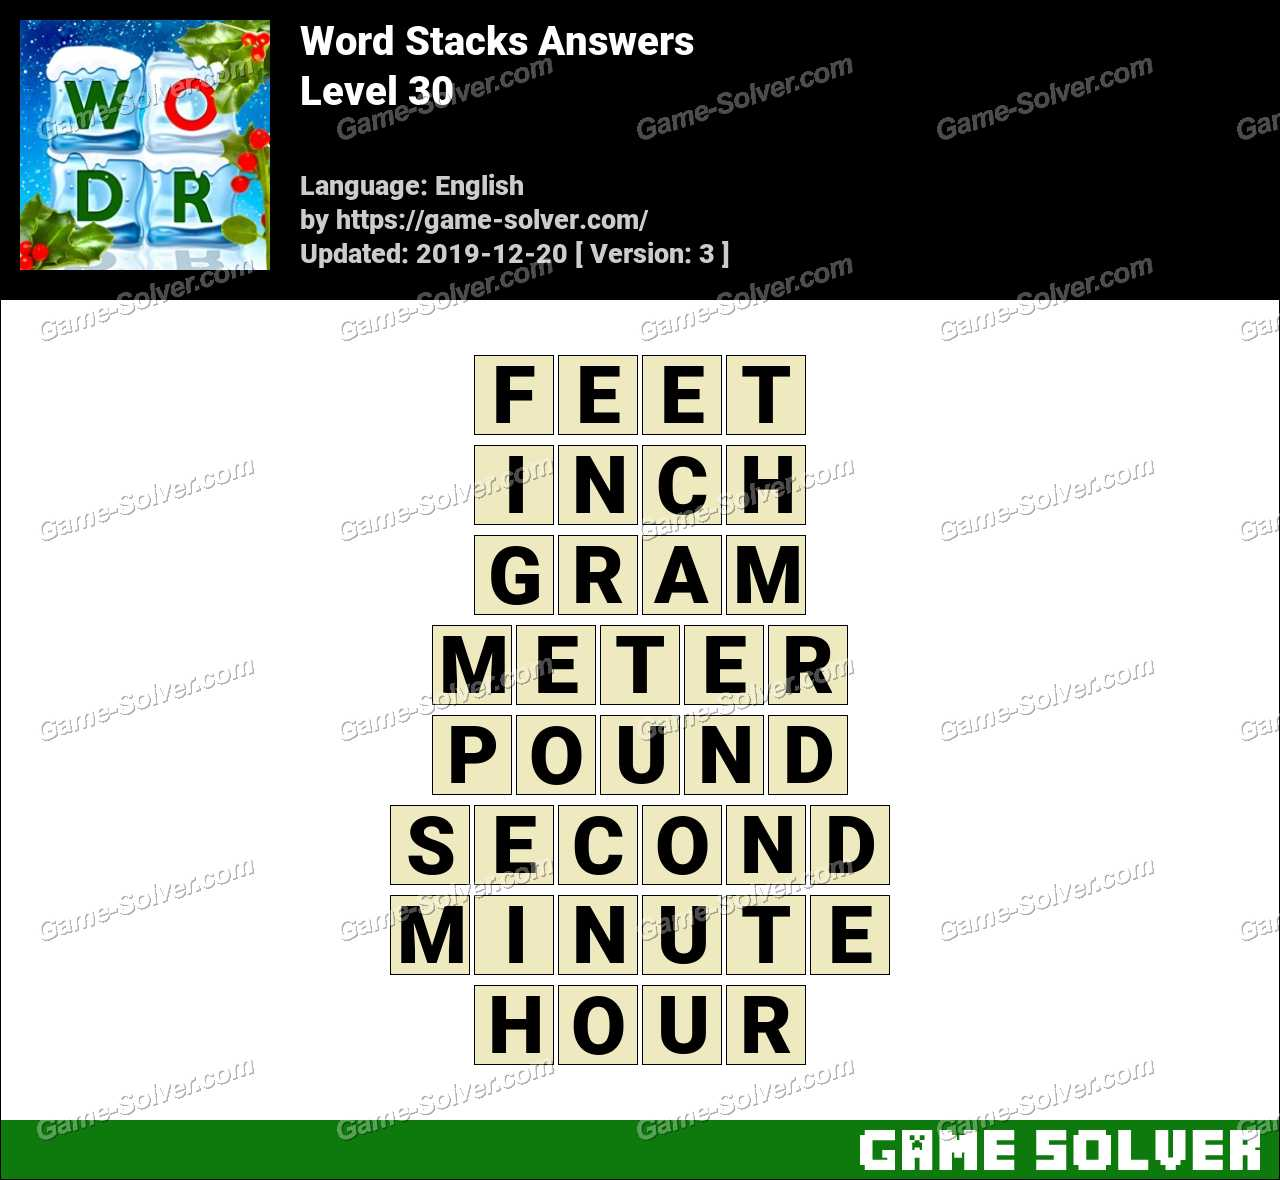 Word Stacks Level 30 Answers